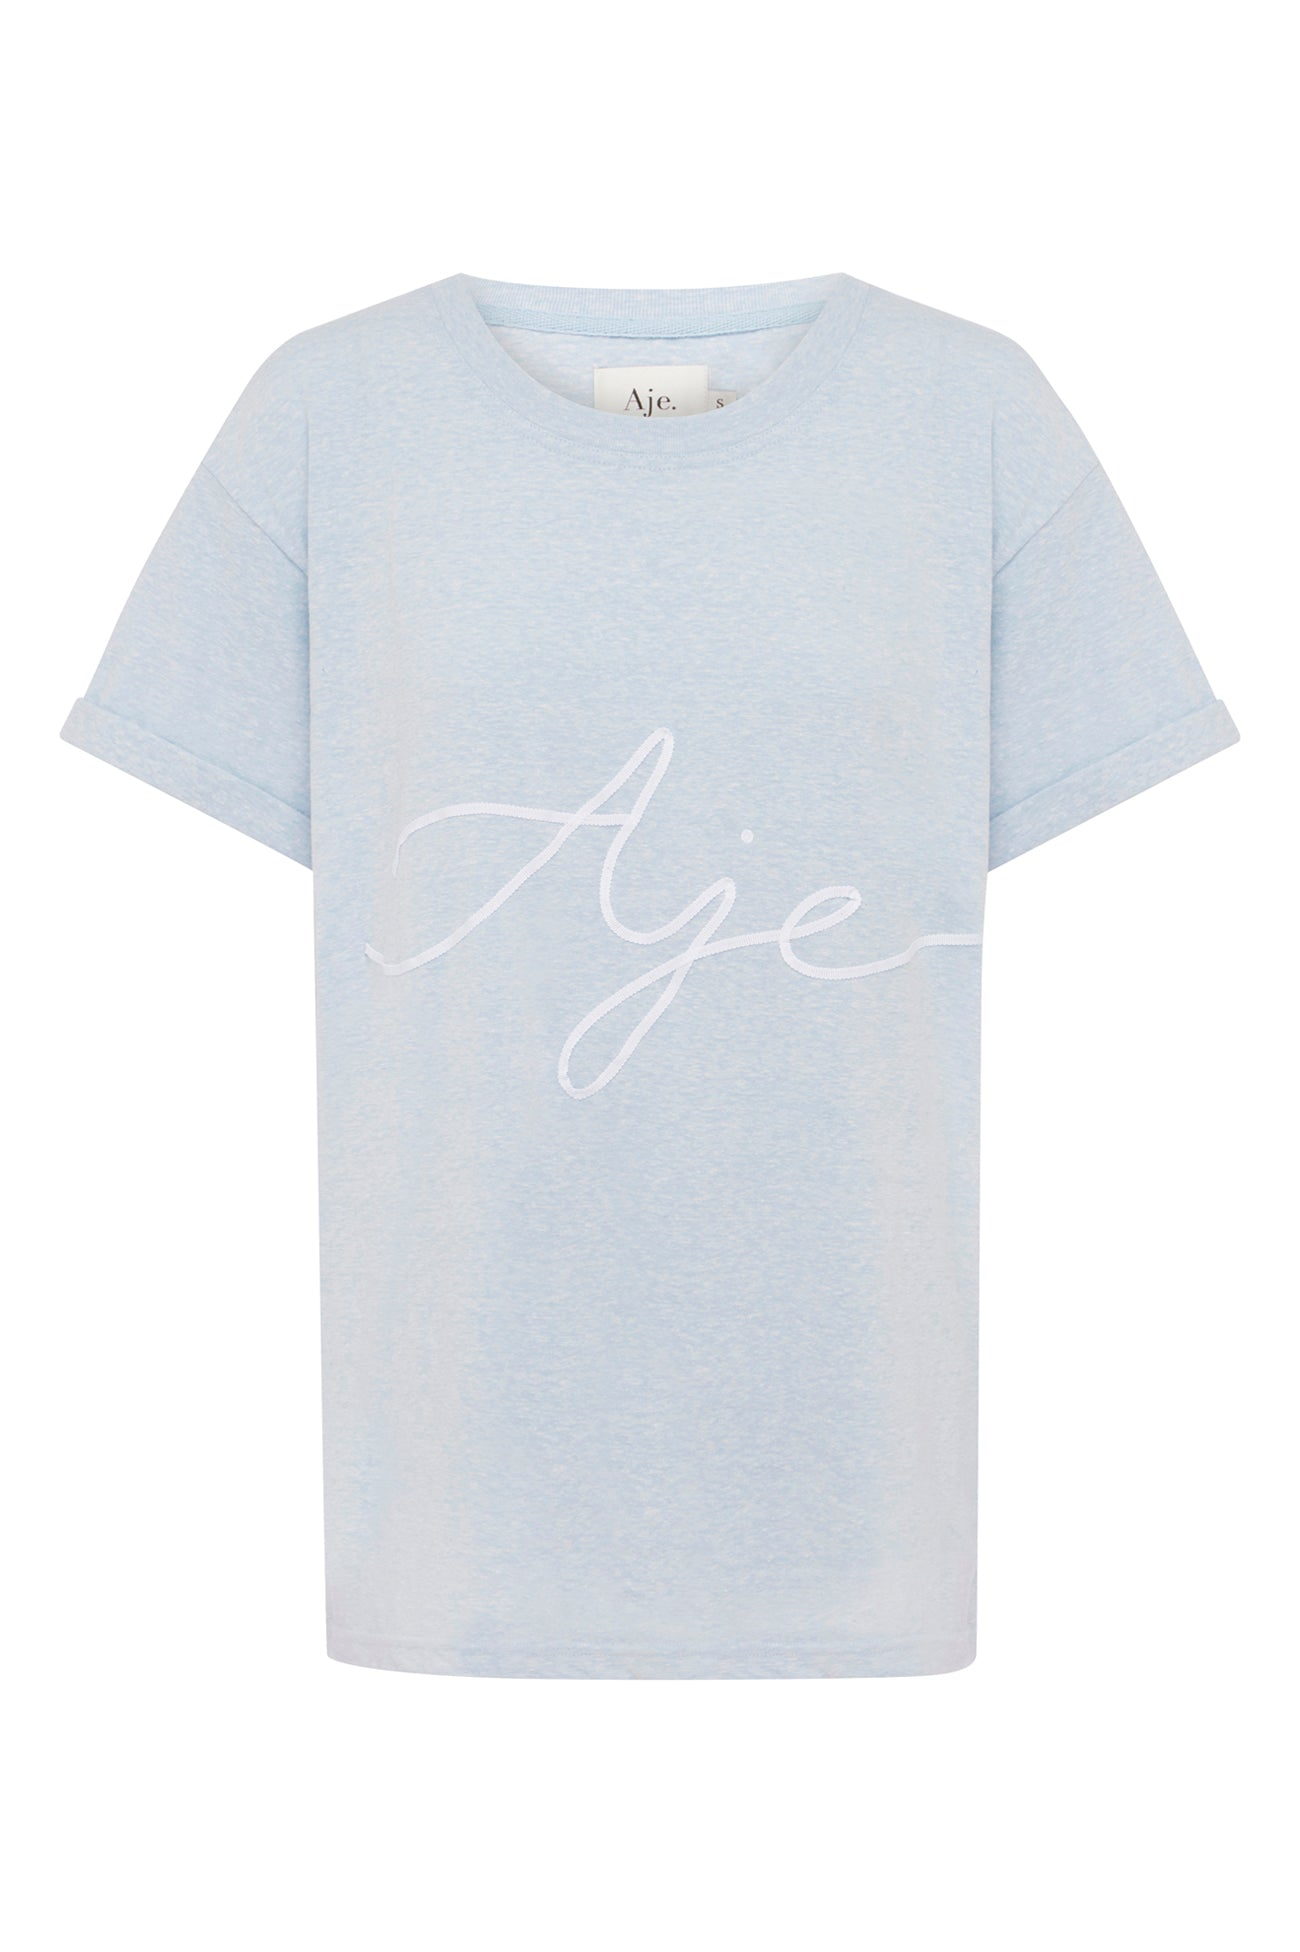 Aje Ribbon Logo Tee Product View